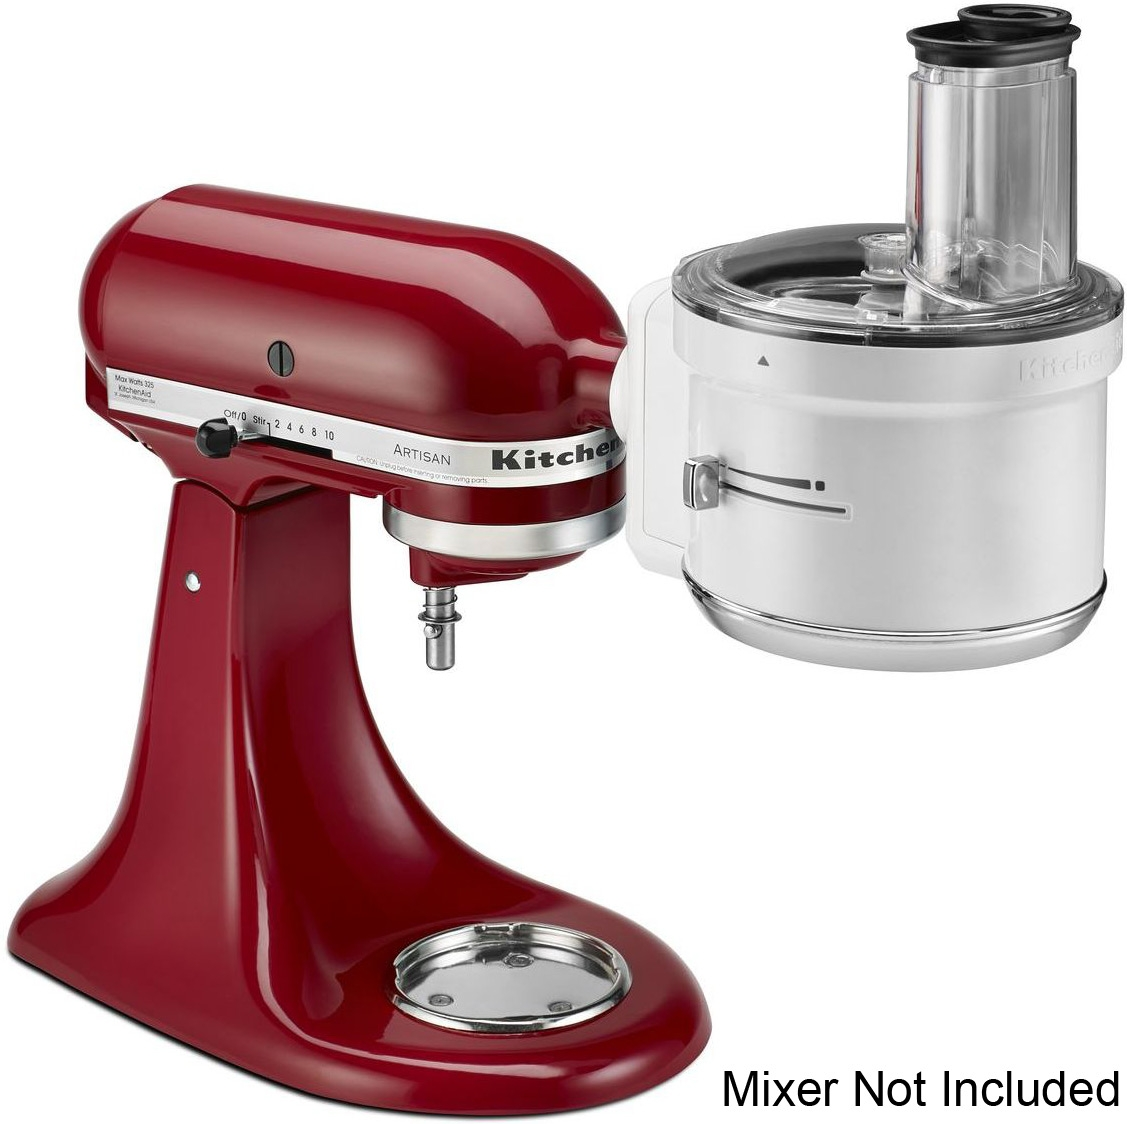 What Does A Kitchenaid Food Processor Do